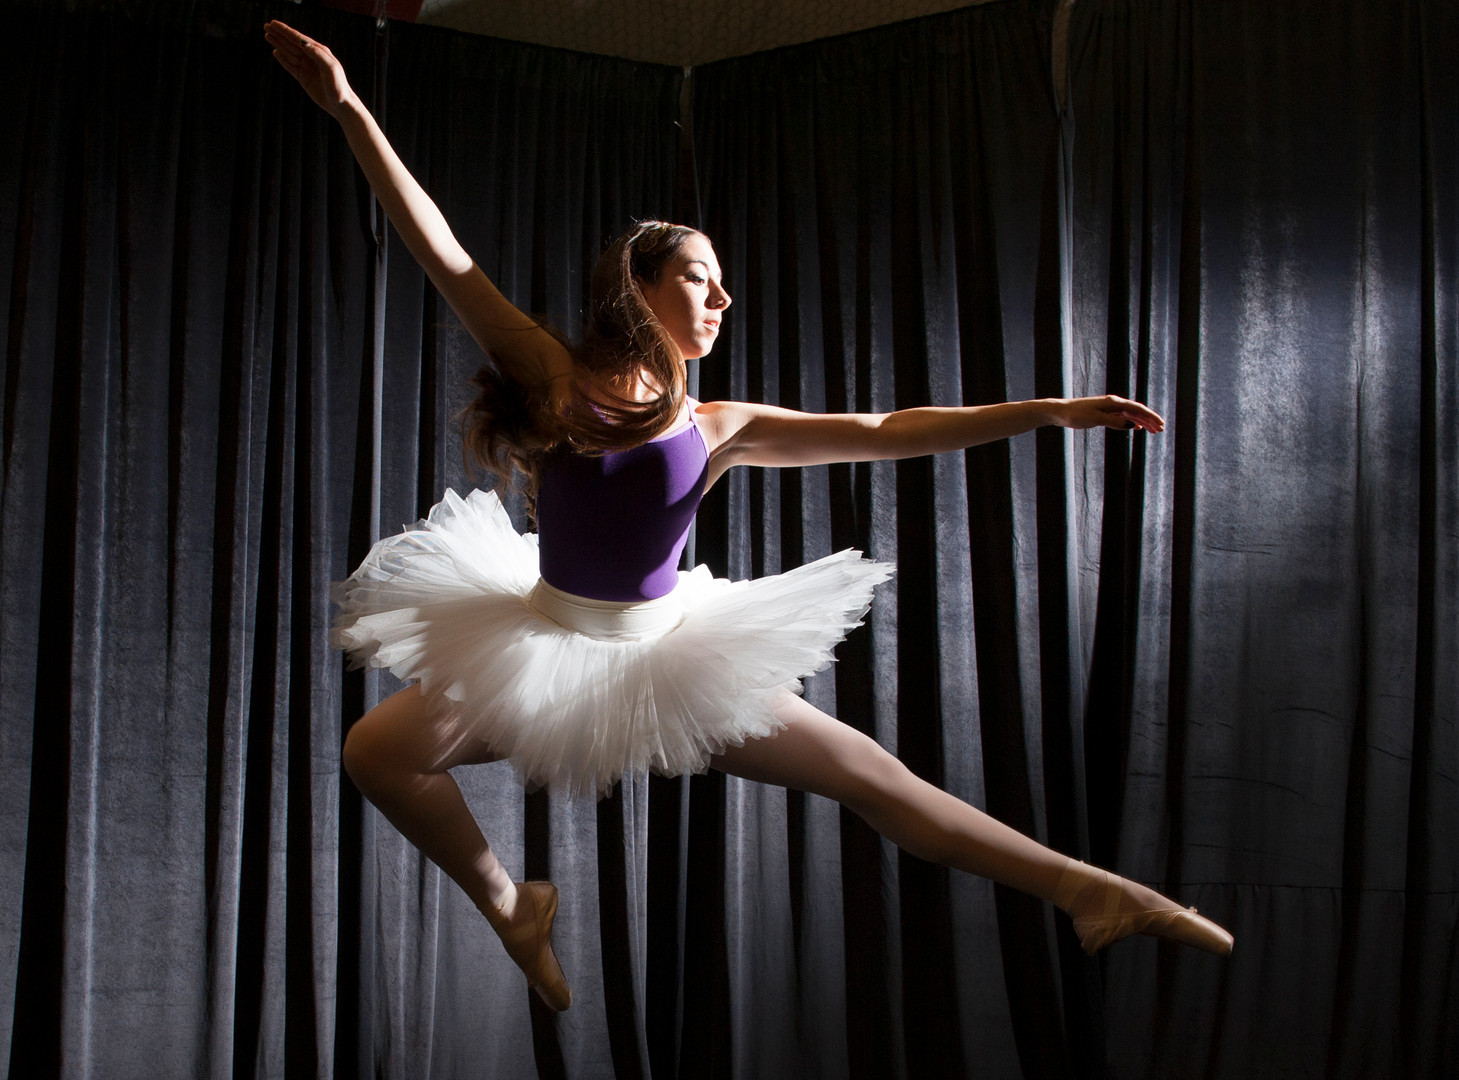 Mollie Becker, 16, demonstrates a Russian pas de chat ballet jump at the Royal Academy of Fine Arts in Webster, Texas. (Coast Monthly)